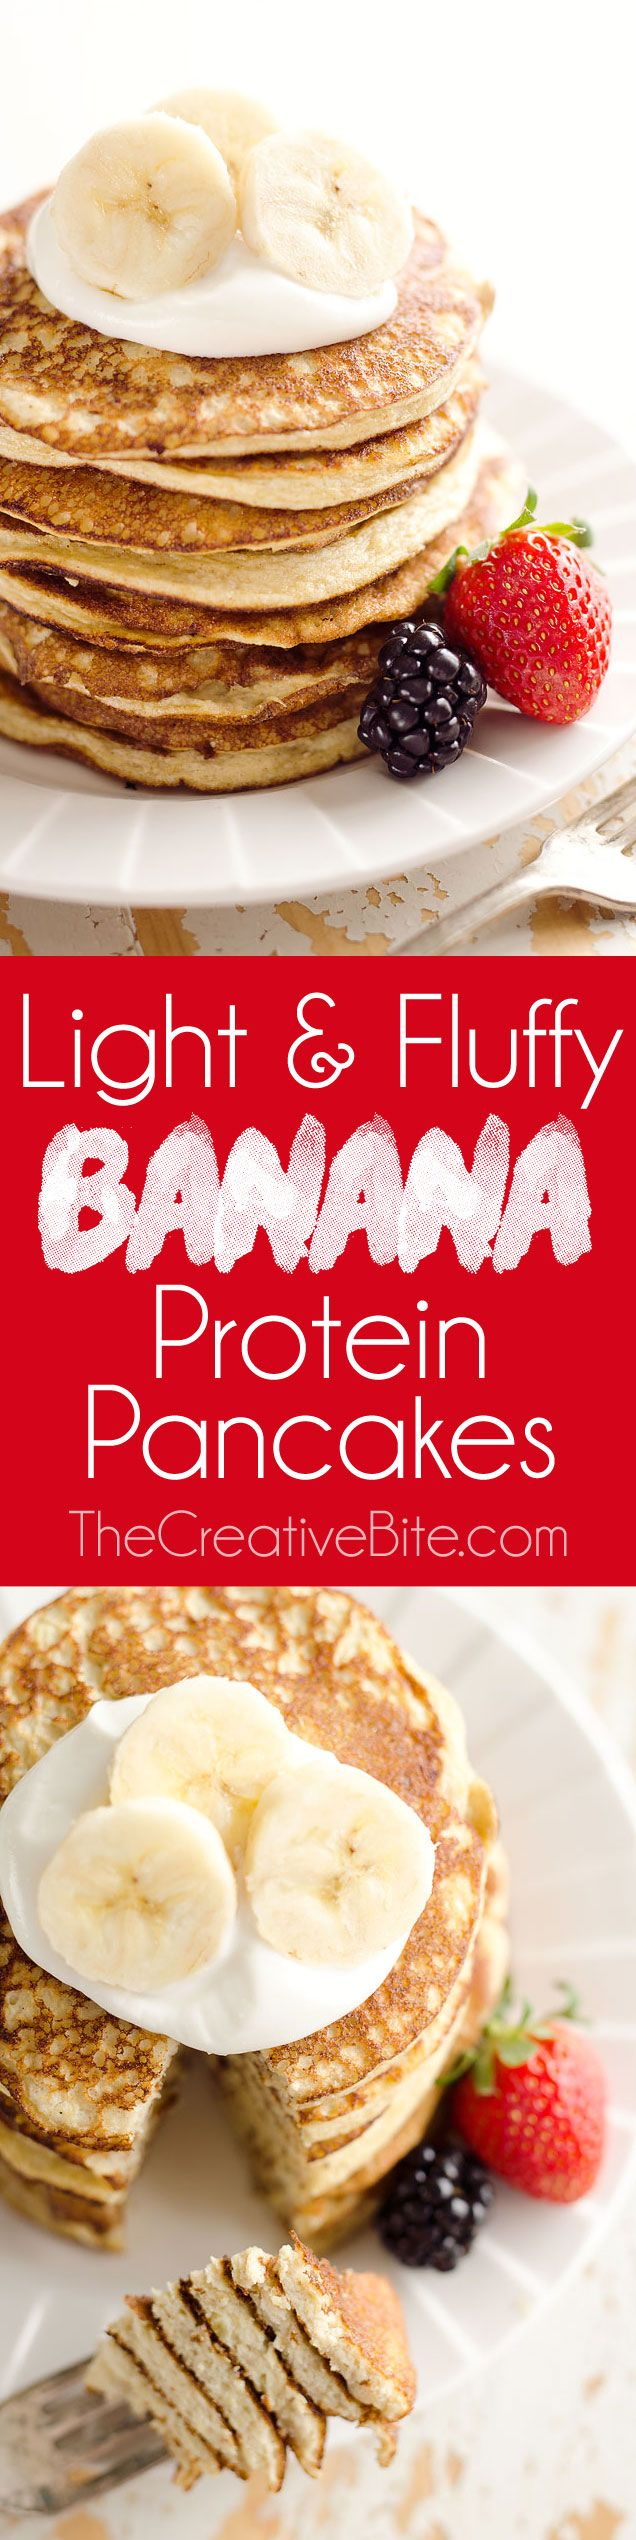 These pancakes are a healthy breakfast with five simple ingredients that taste amazing and fill you up! Egg whites, protein powder and ripe bananas make up these low-fat and low-carb pancakes for a complete and wholesome meal under 200 calories.